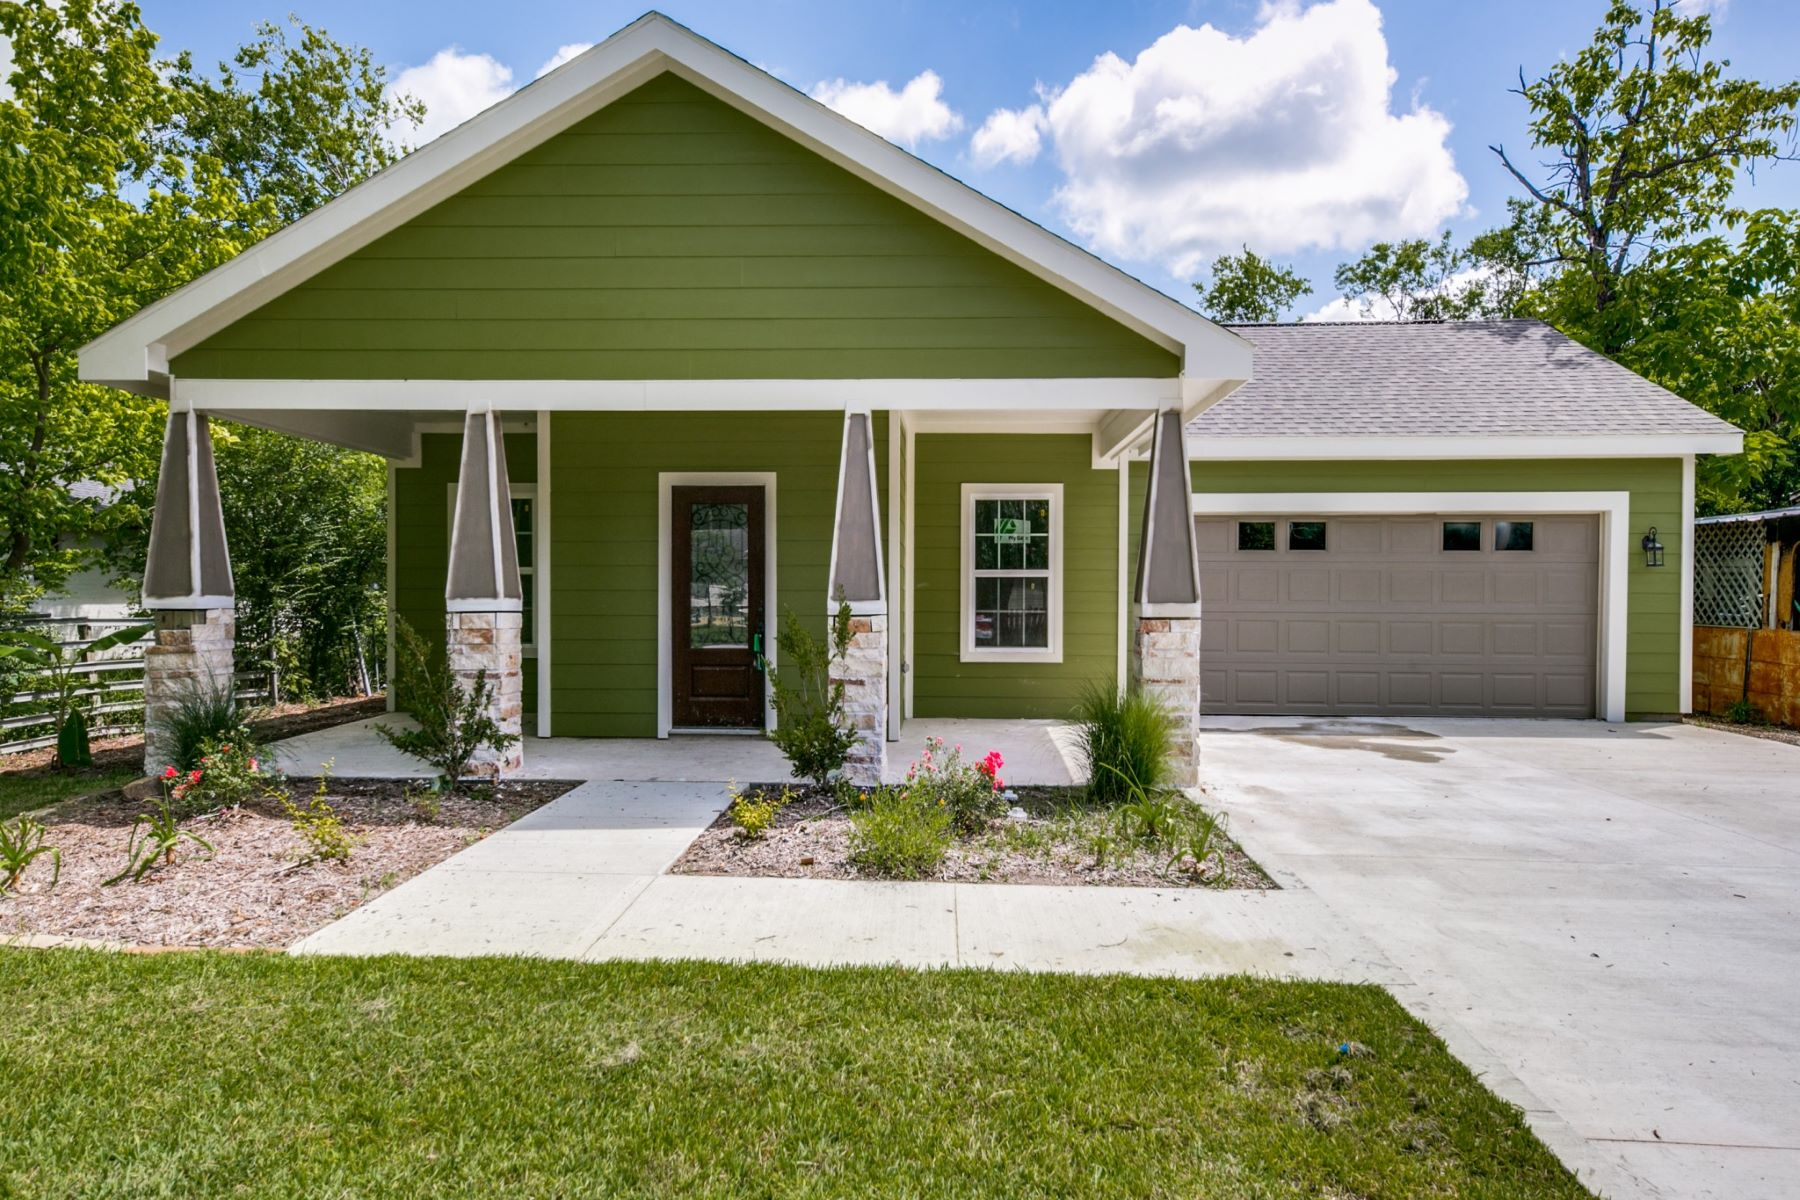 Single Family Homes for Active at Terrell New Construction 305 Laroe Street Terrell, Texas 75160 United States